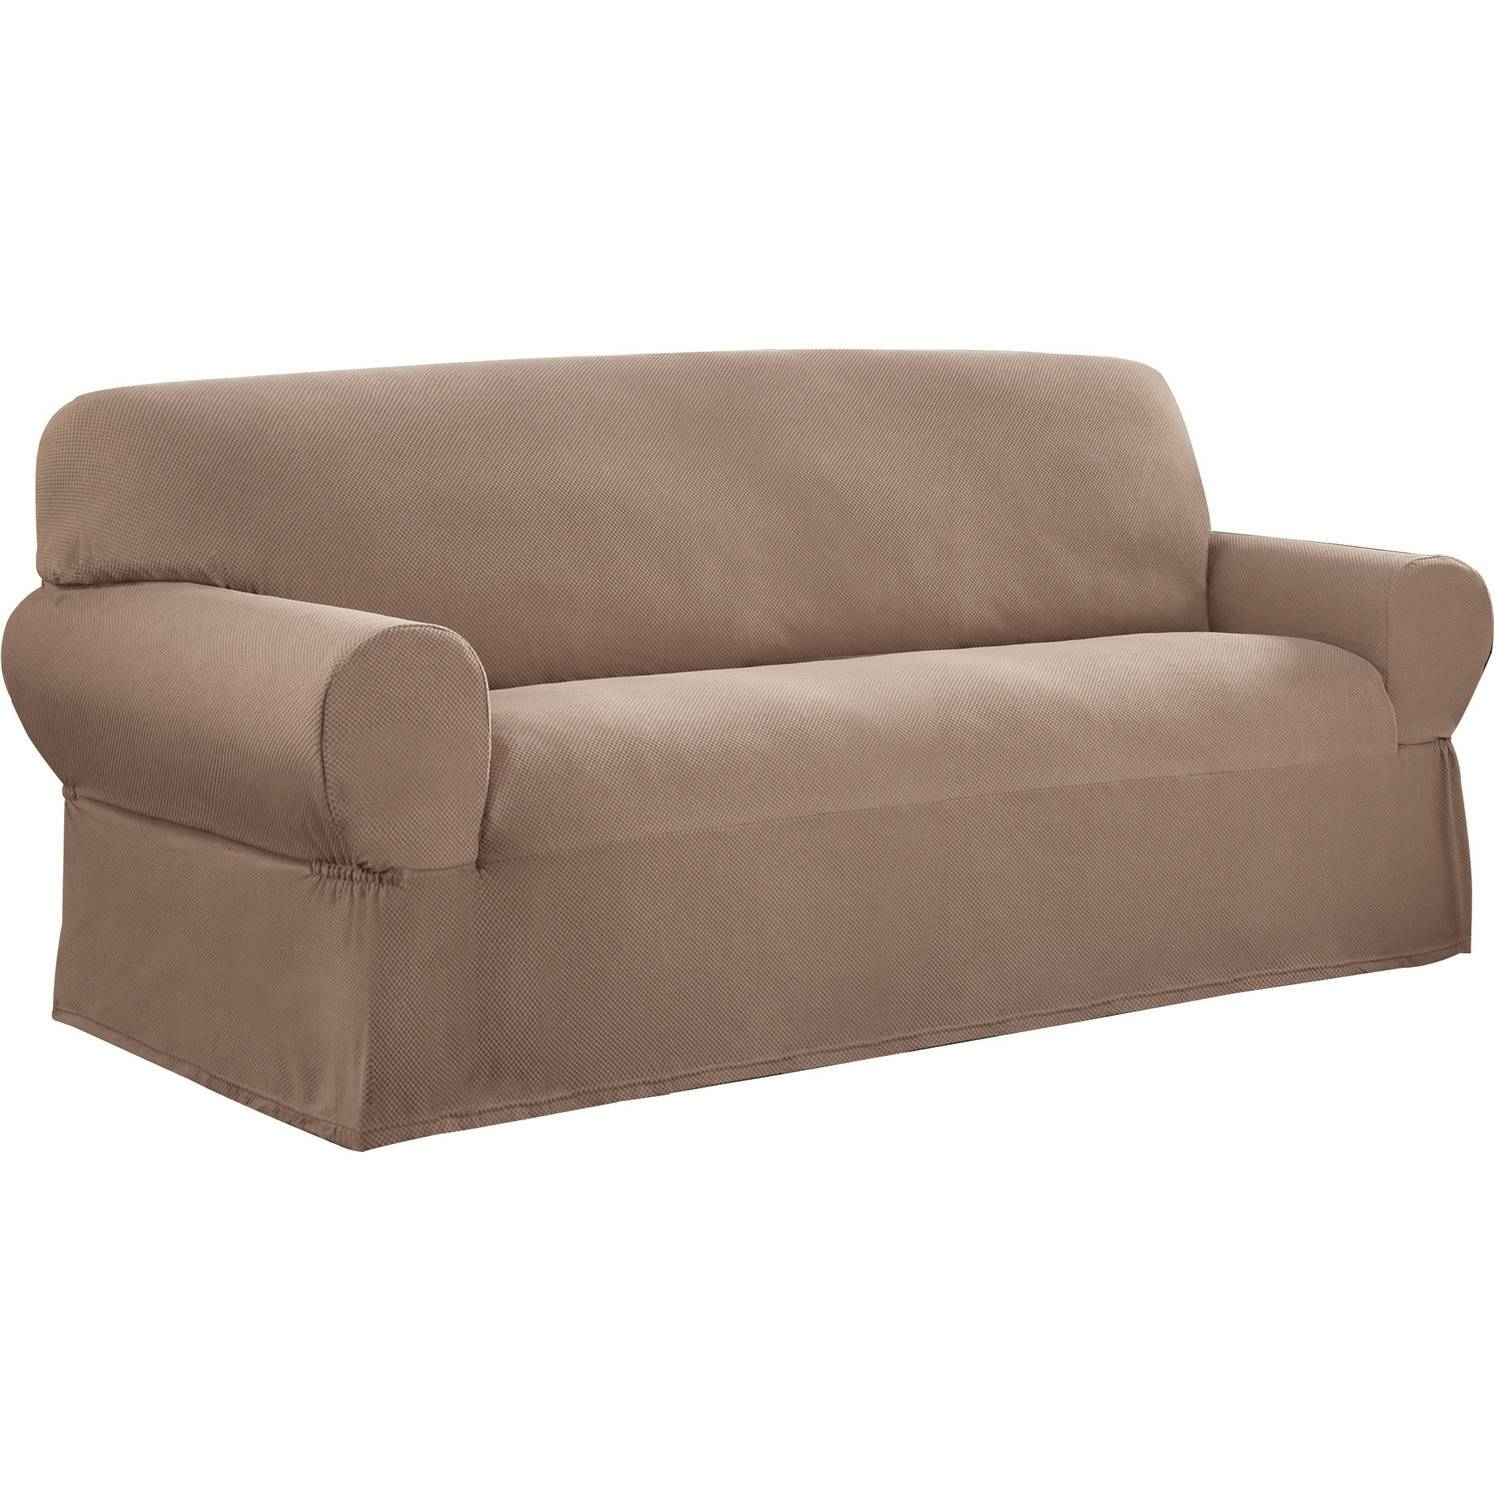 Mainstays 1-Piece Stretch Fabric Sofa Slipcover - Walmart regarding Sofa Loveseat Slipcovers (Image 20 of 30)